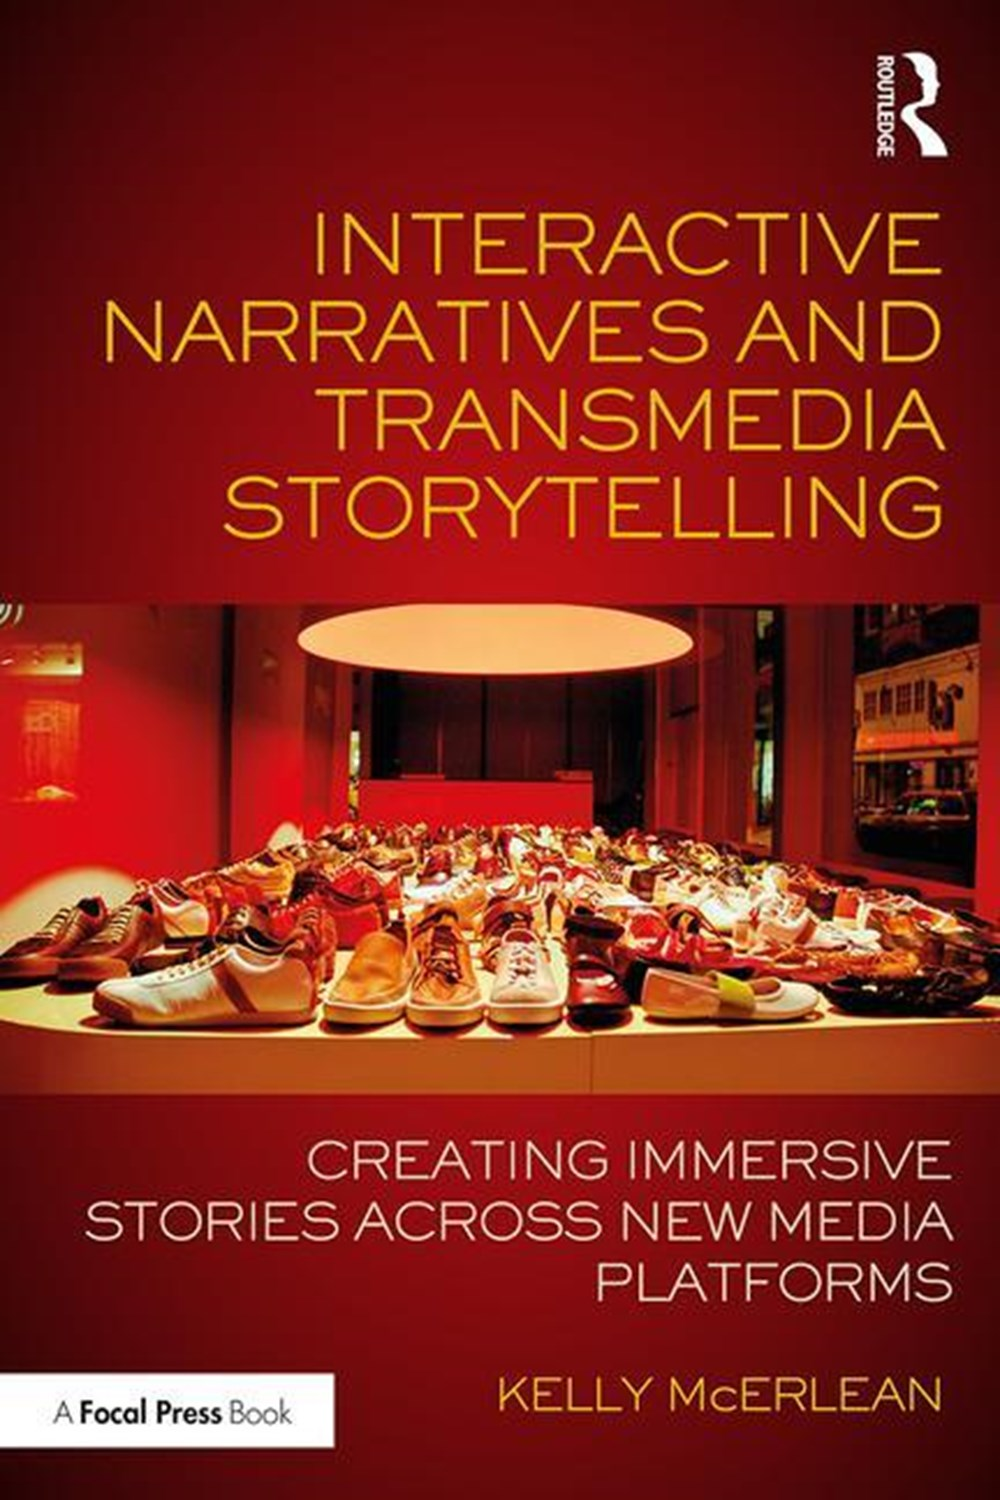 Interactive Narratives and Transmedia Storytelling Creating Immersive Stories Across New Media Platf